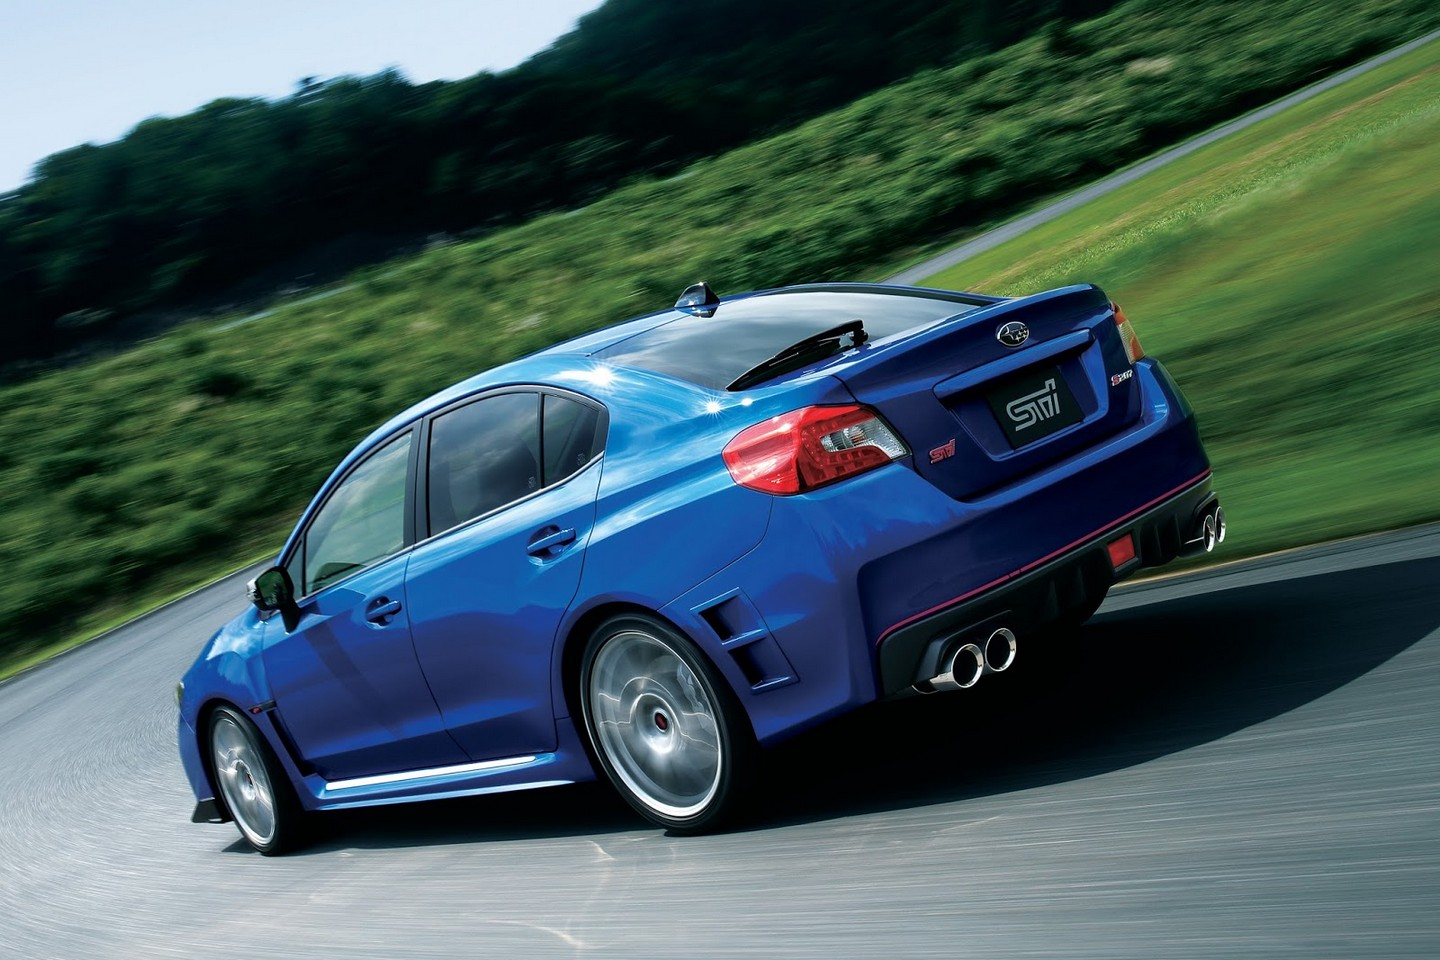 Official Subaru Wrx Sti S207 Special Limited Edition